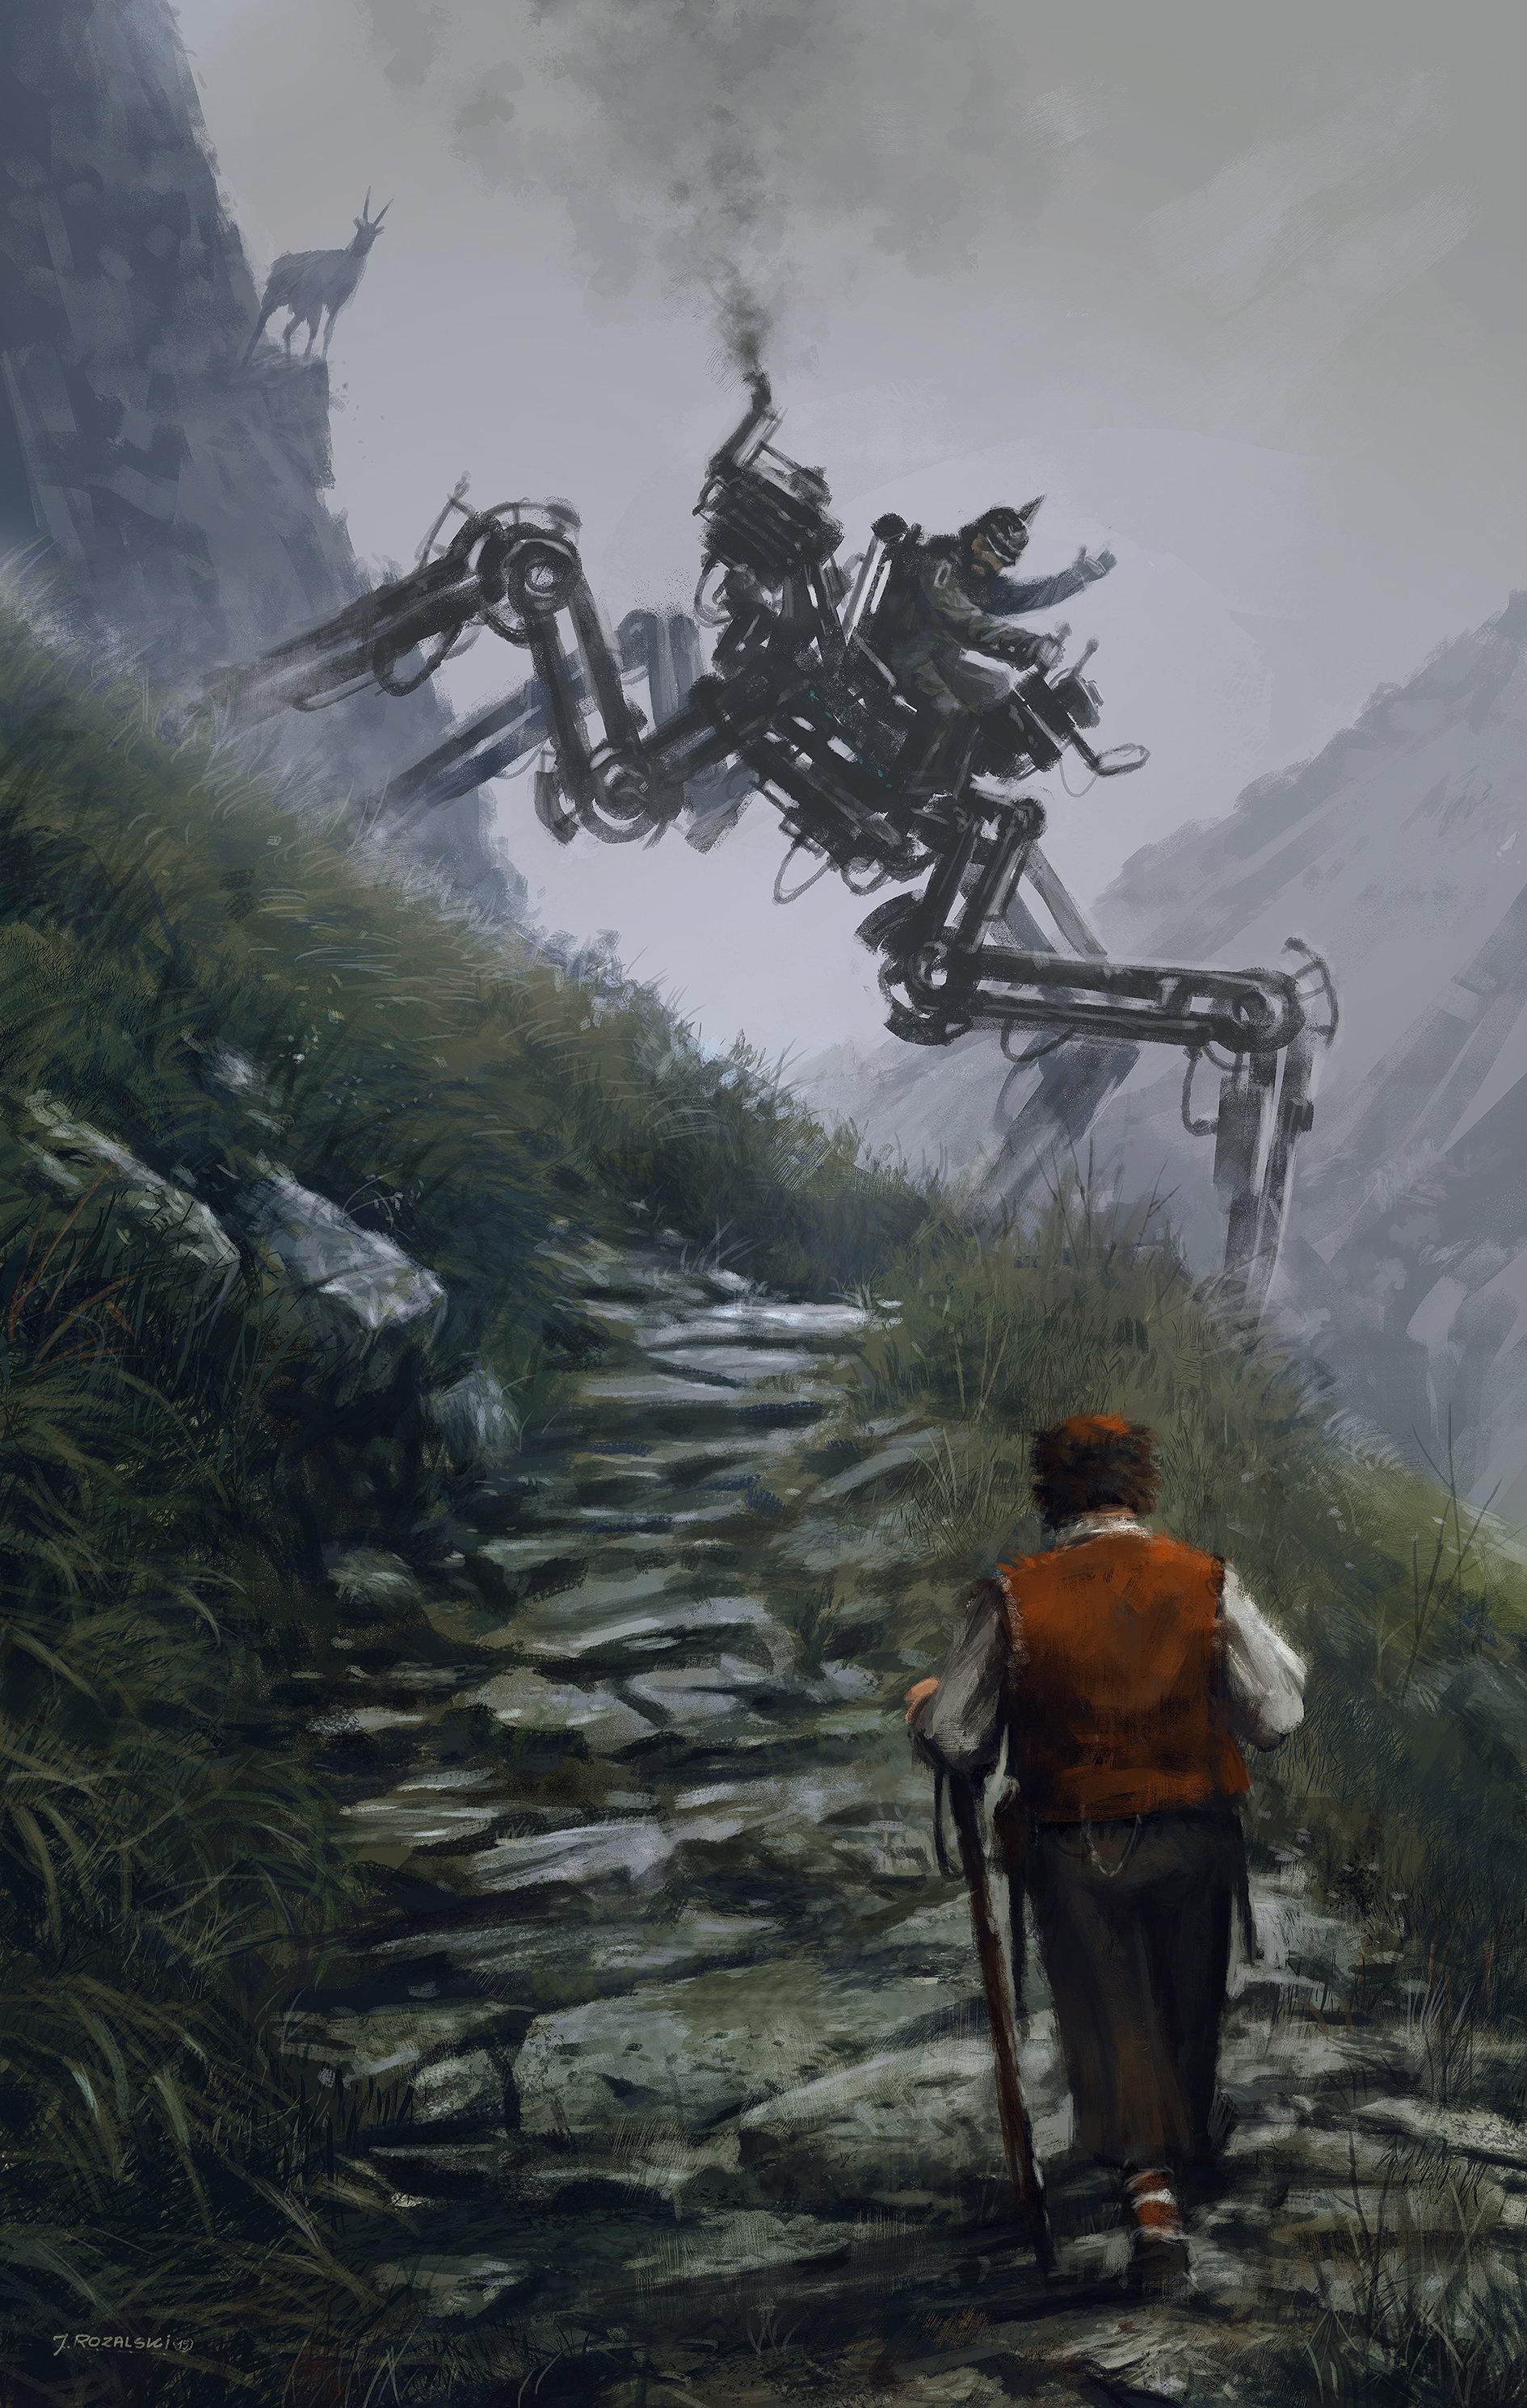 Jakub rozalski factory illustration 02 mountainwalkerls